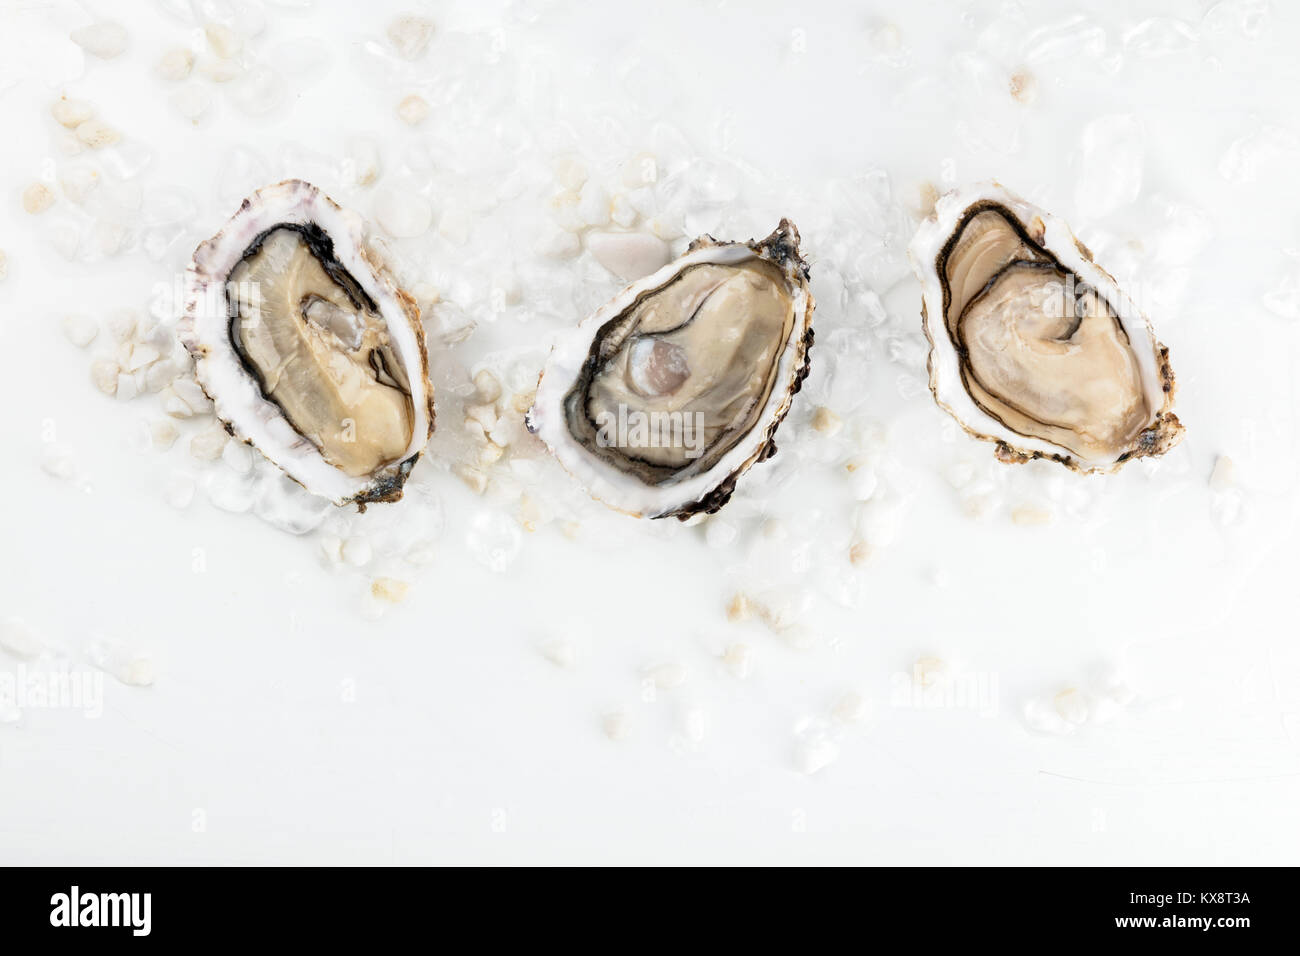 Overhead photo of three oysters with copy space - Stock Image